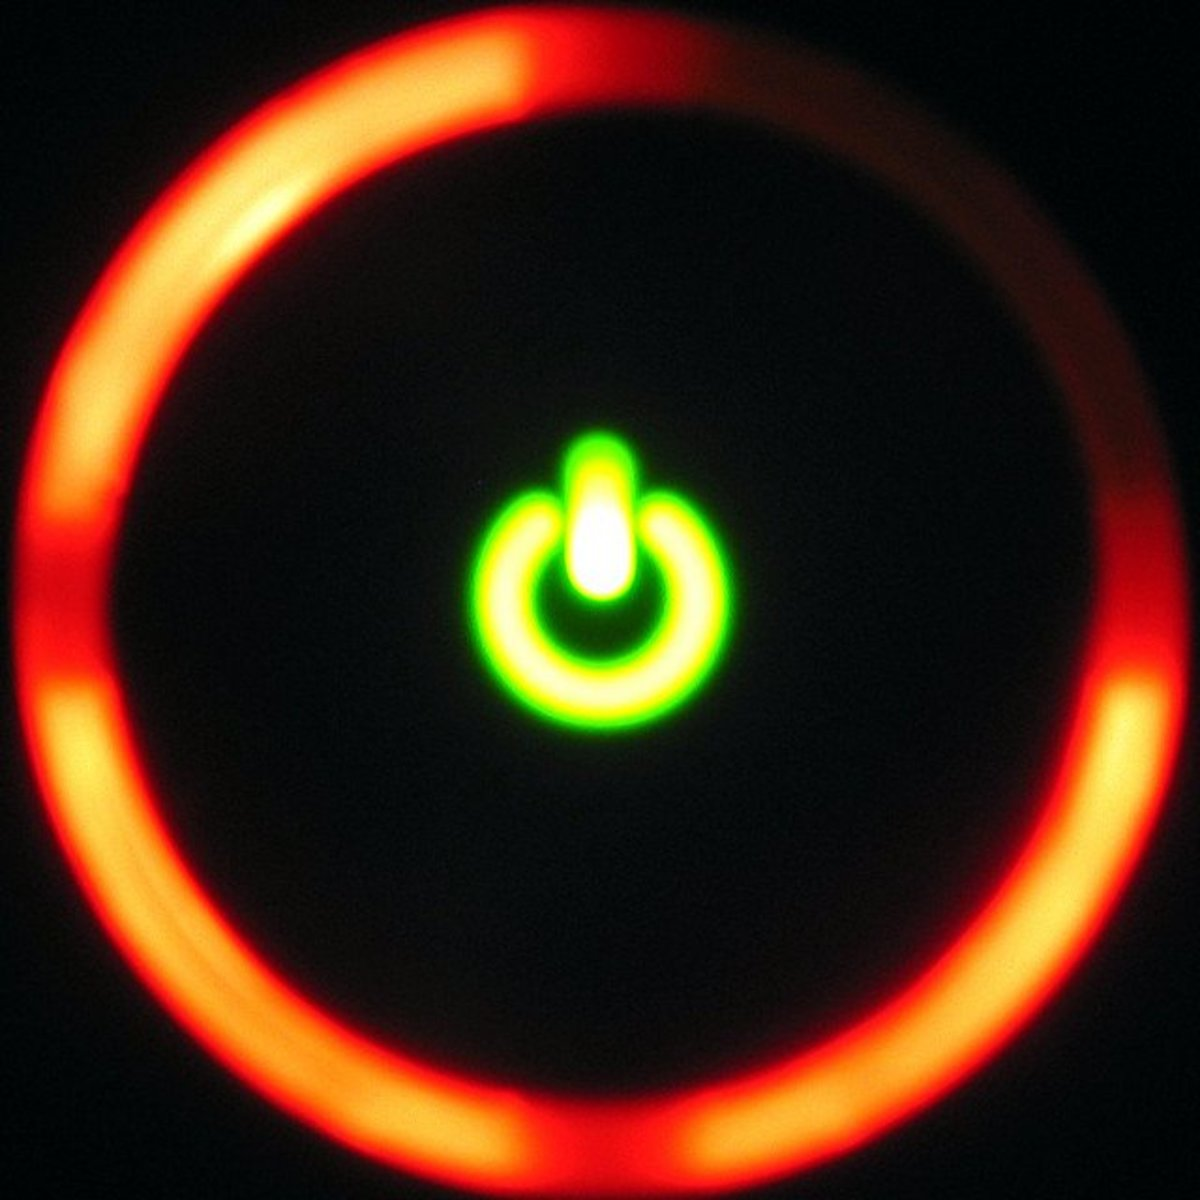 How To Avoid The Red Ring of Death (On Your Xbox 360